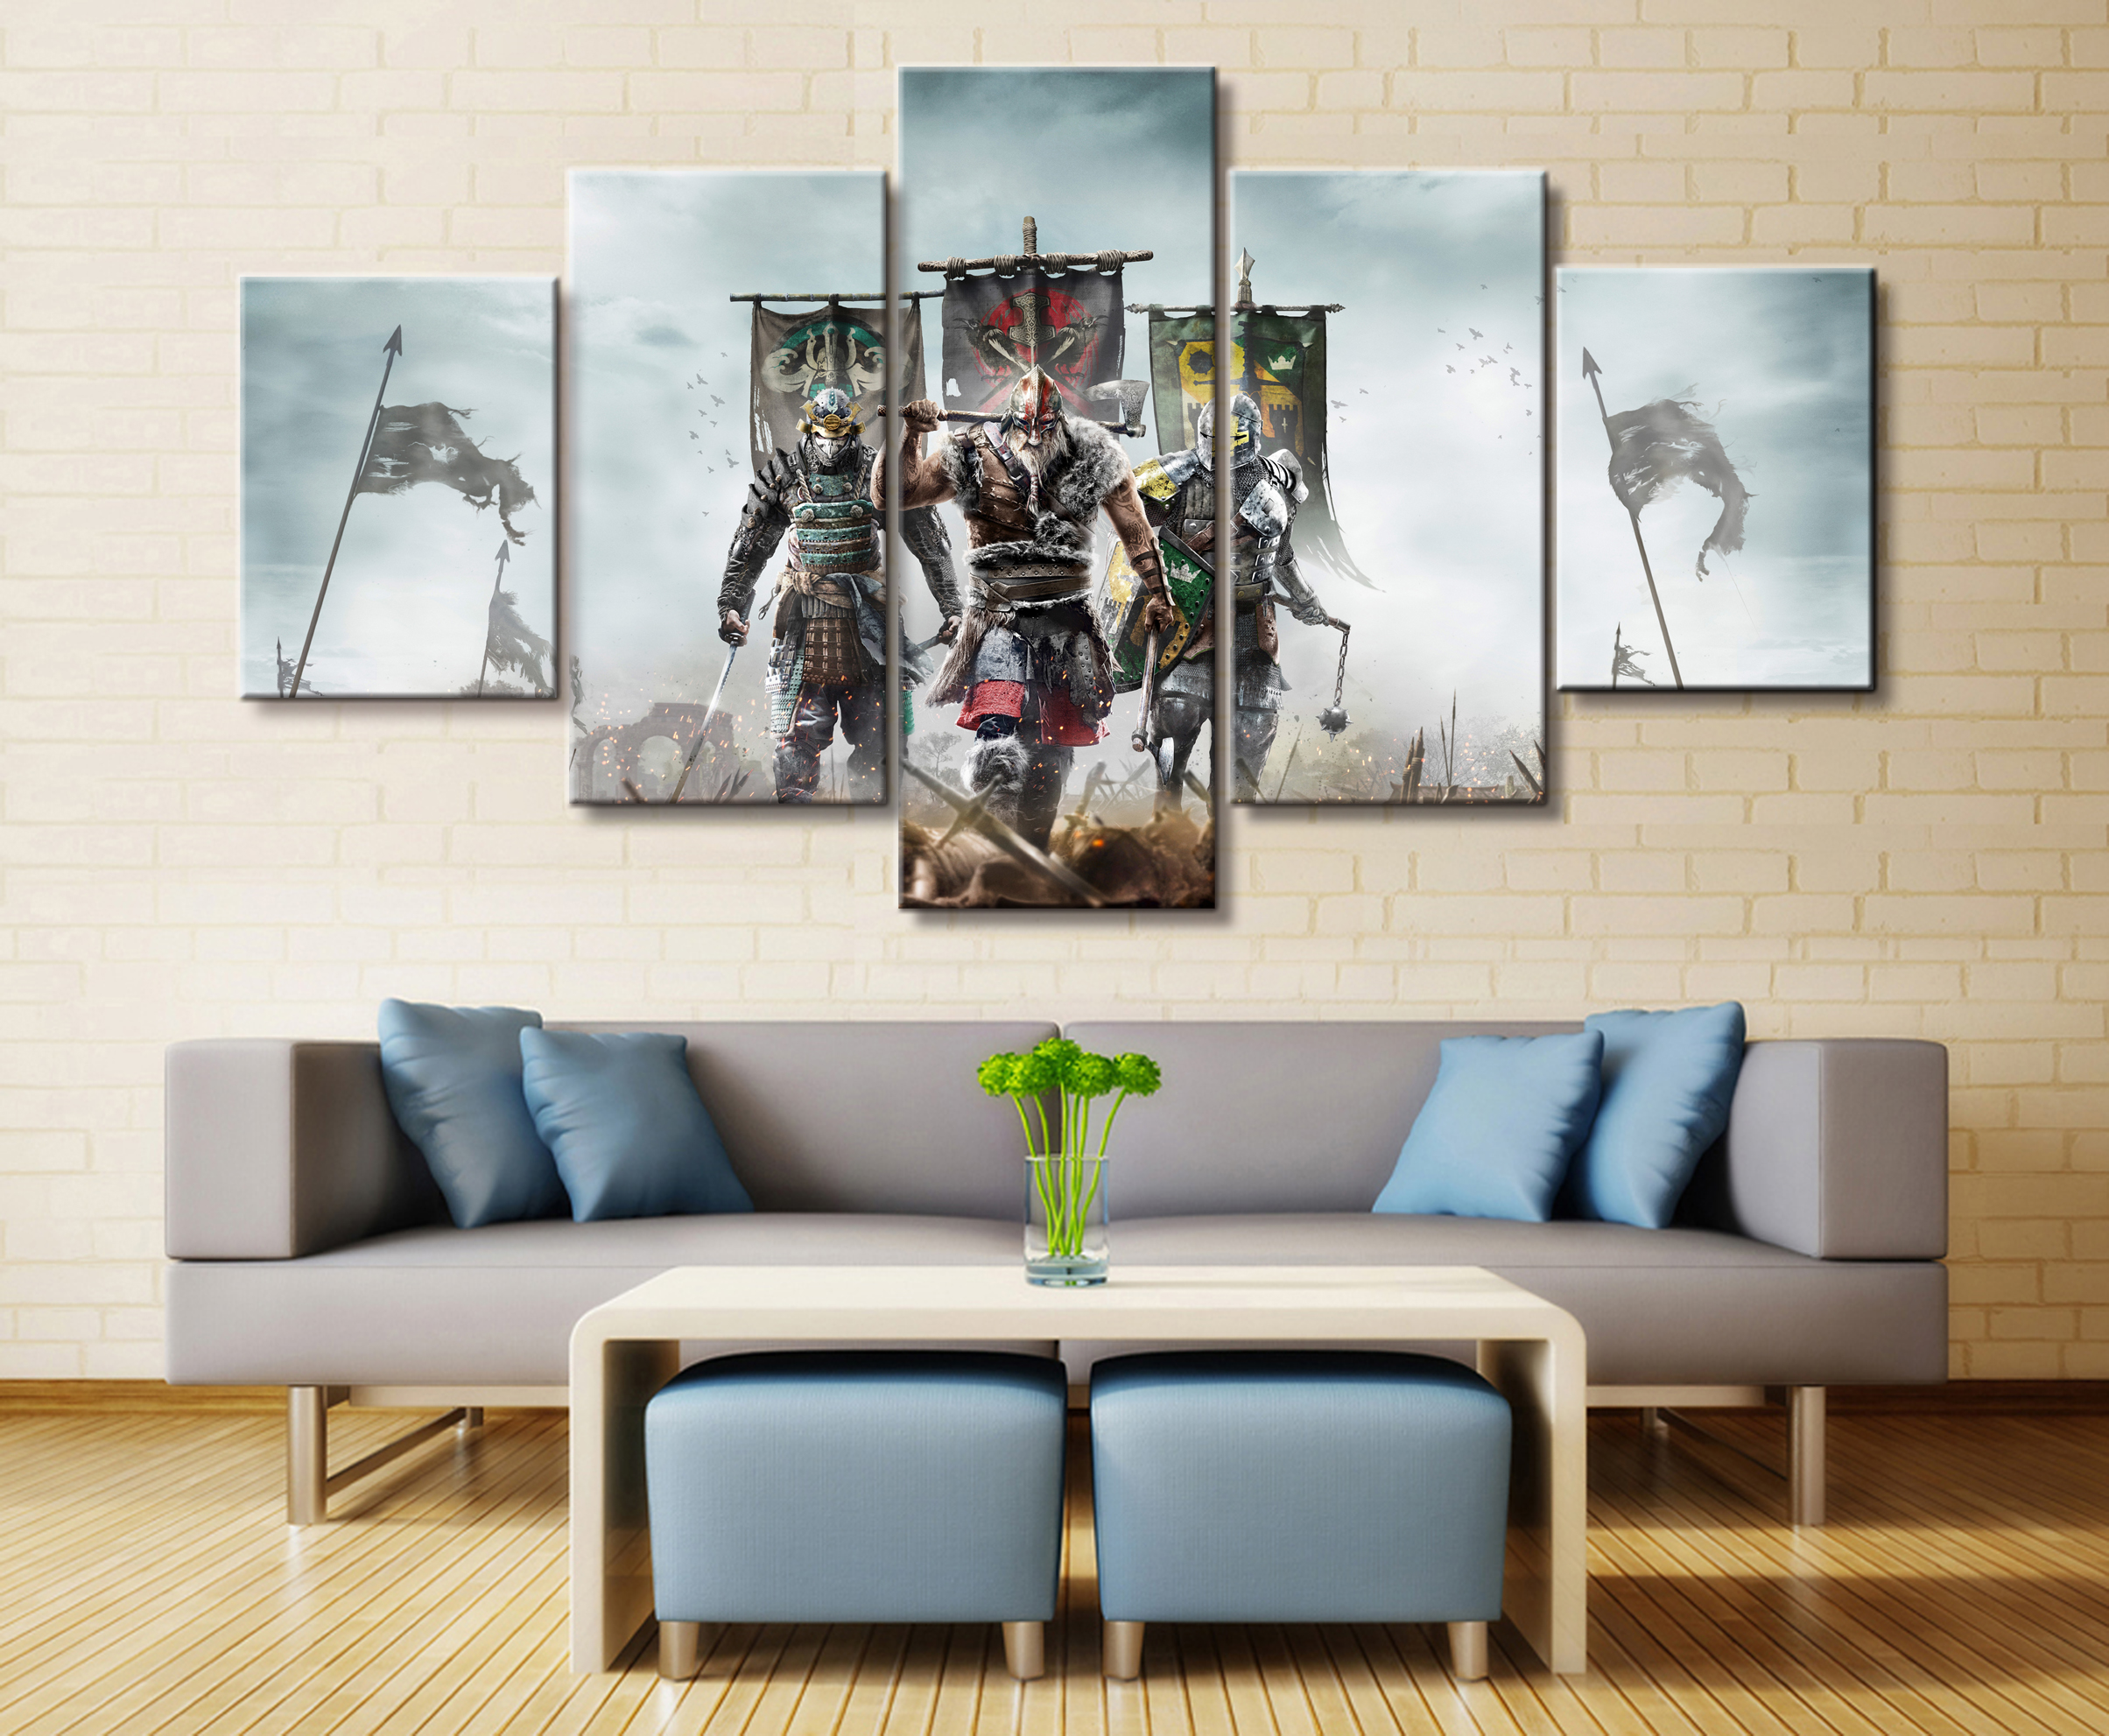 5 Pieces For Honor Game Comic Poster Modern Wall Art Decorative Modular Framework Picture Canvas HD Printed One Set Painting in Painting Calligraphy from Home Garden